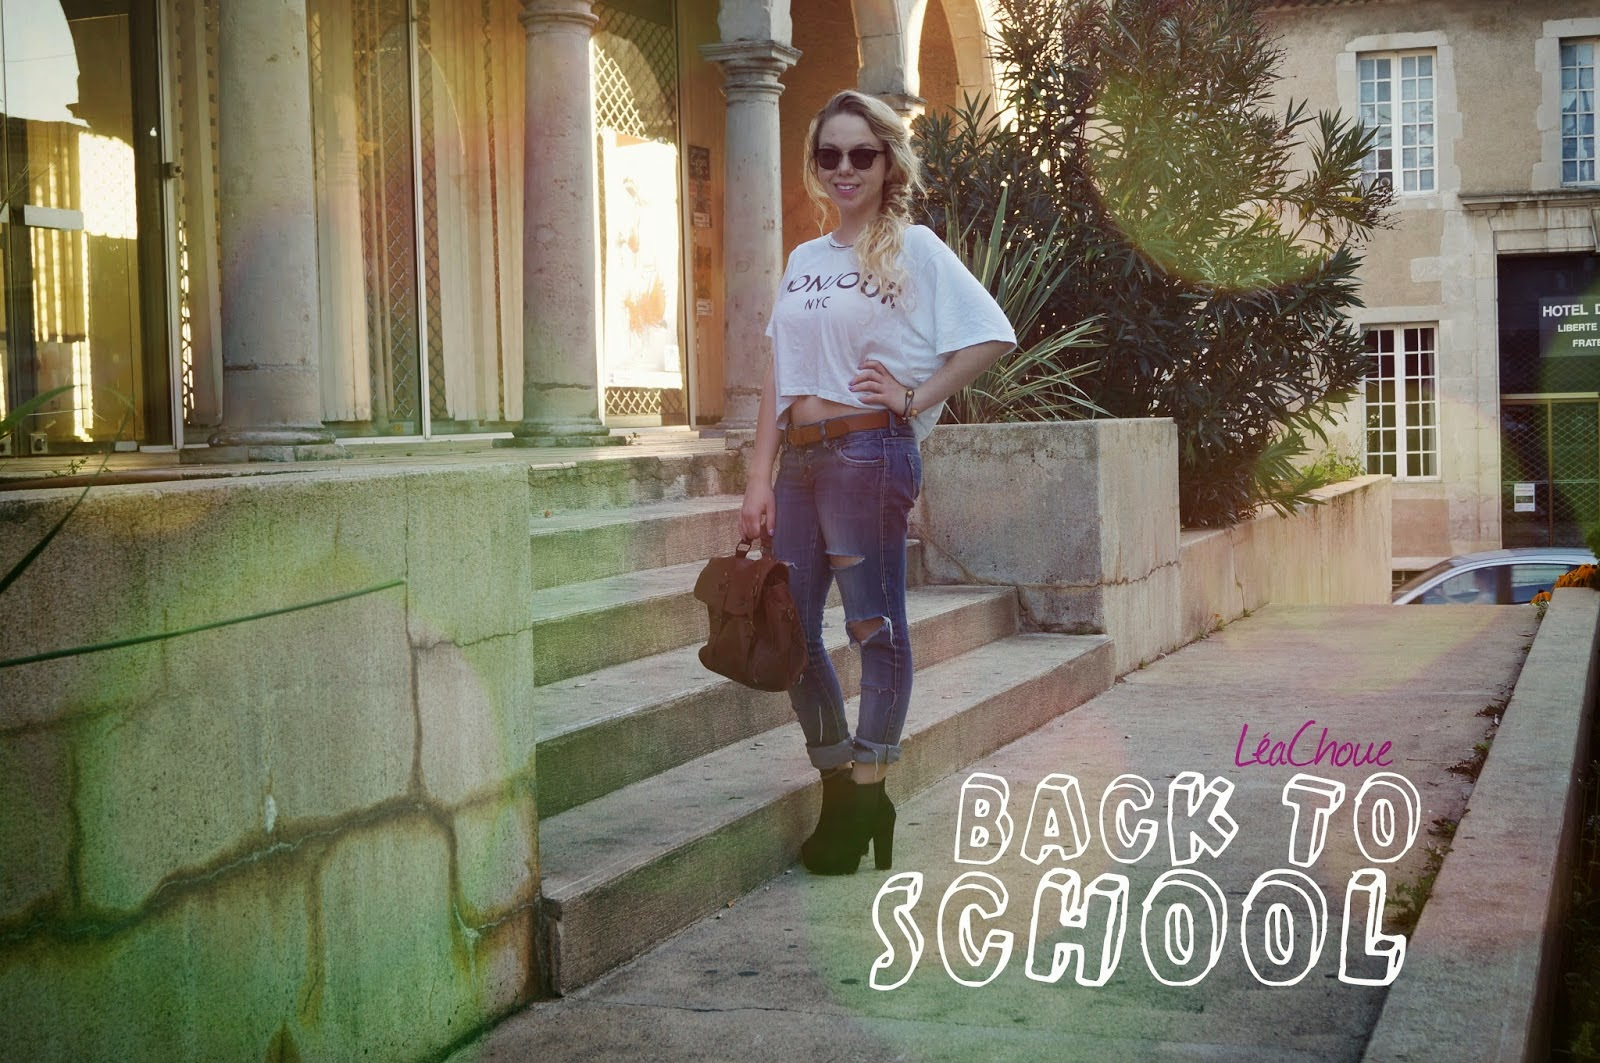 http://www.leachoue.com/2014/10/back-to-school-clothes-leachoue.html